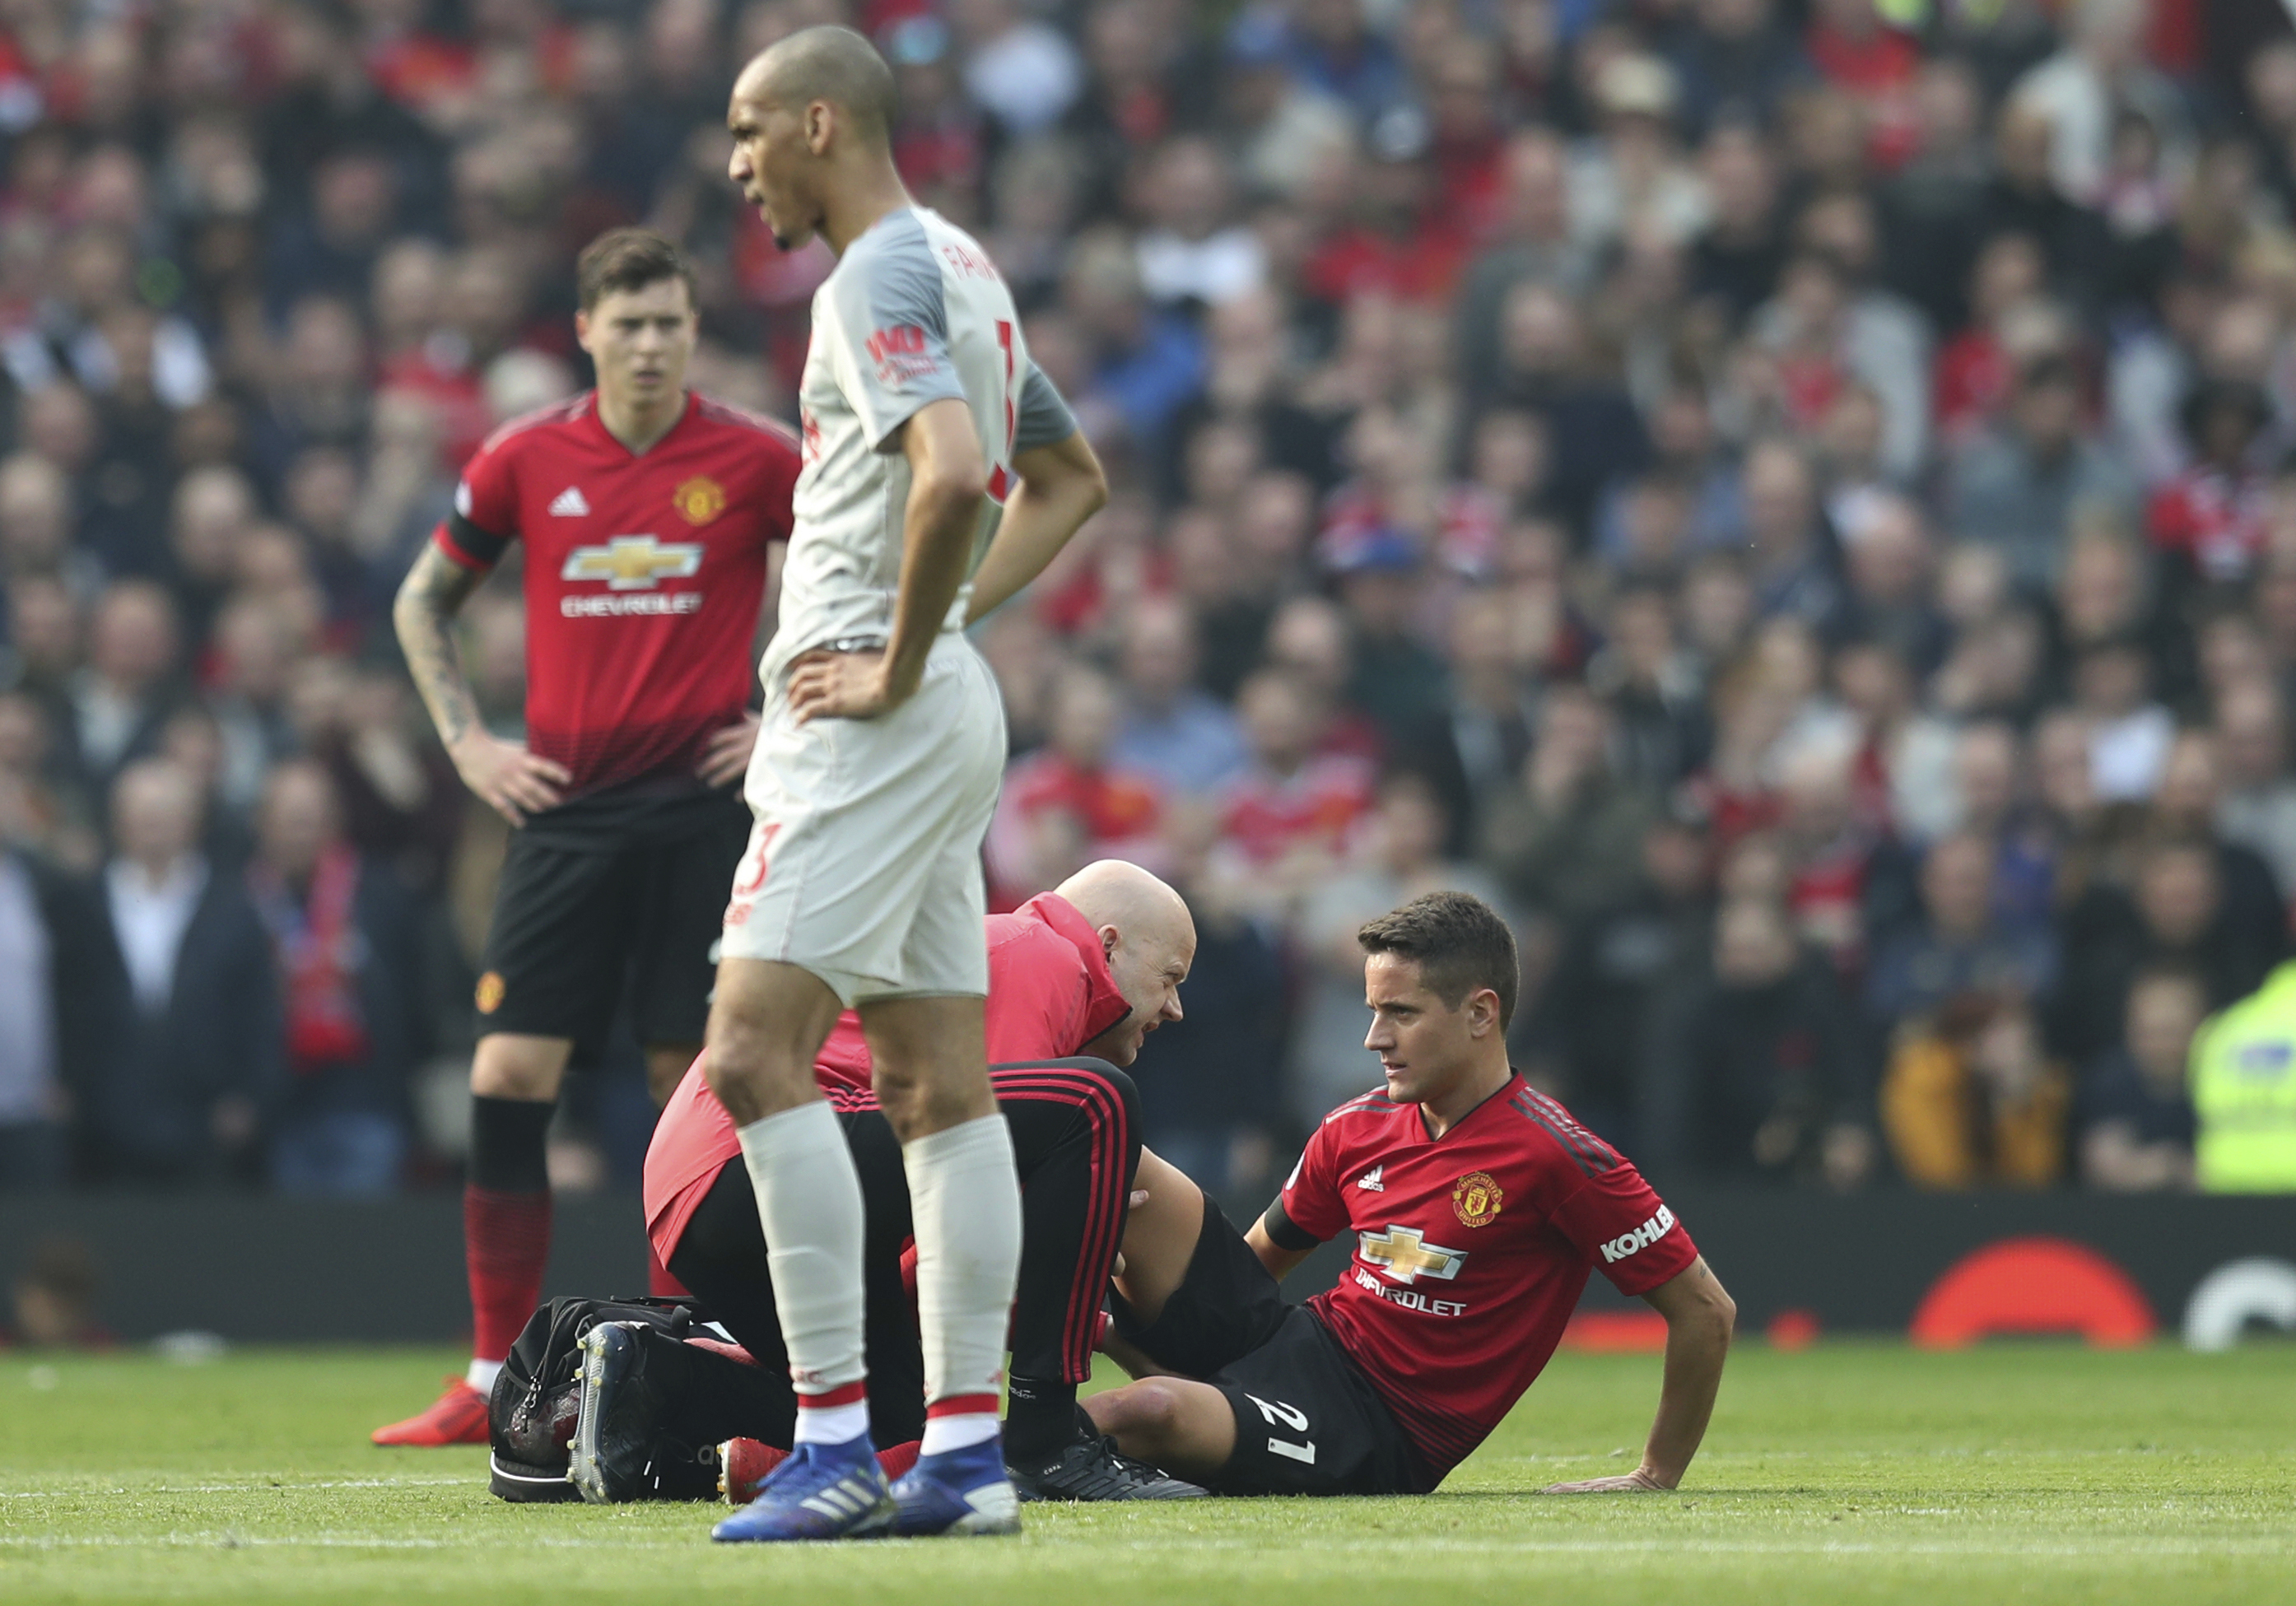 Lingard (above) gets treatment and Herrera makes the physio the busiest man in Old Trafford. Image: PA Images